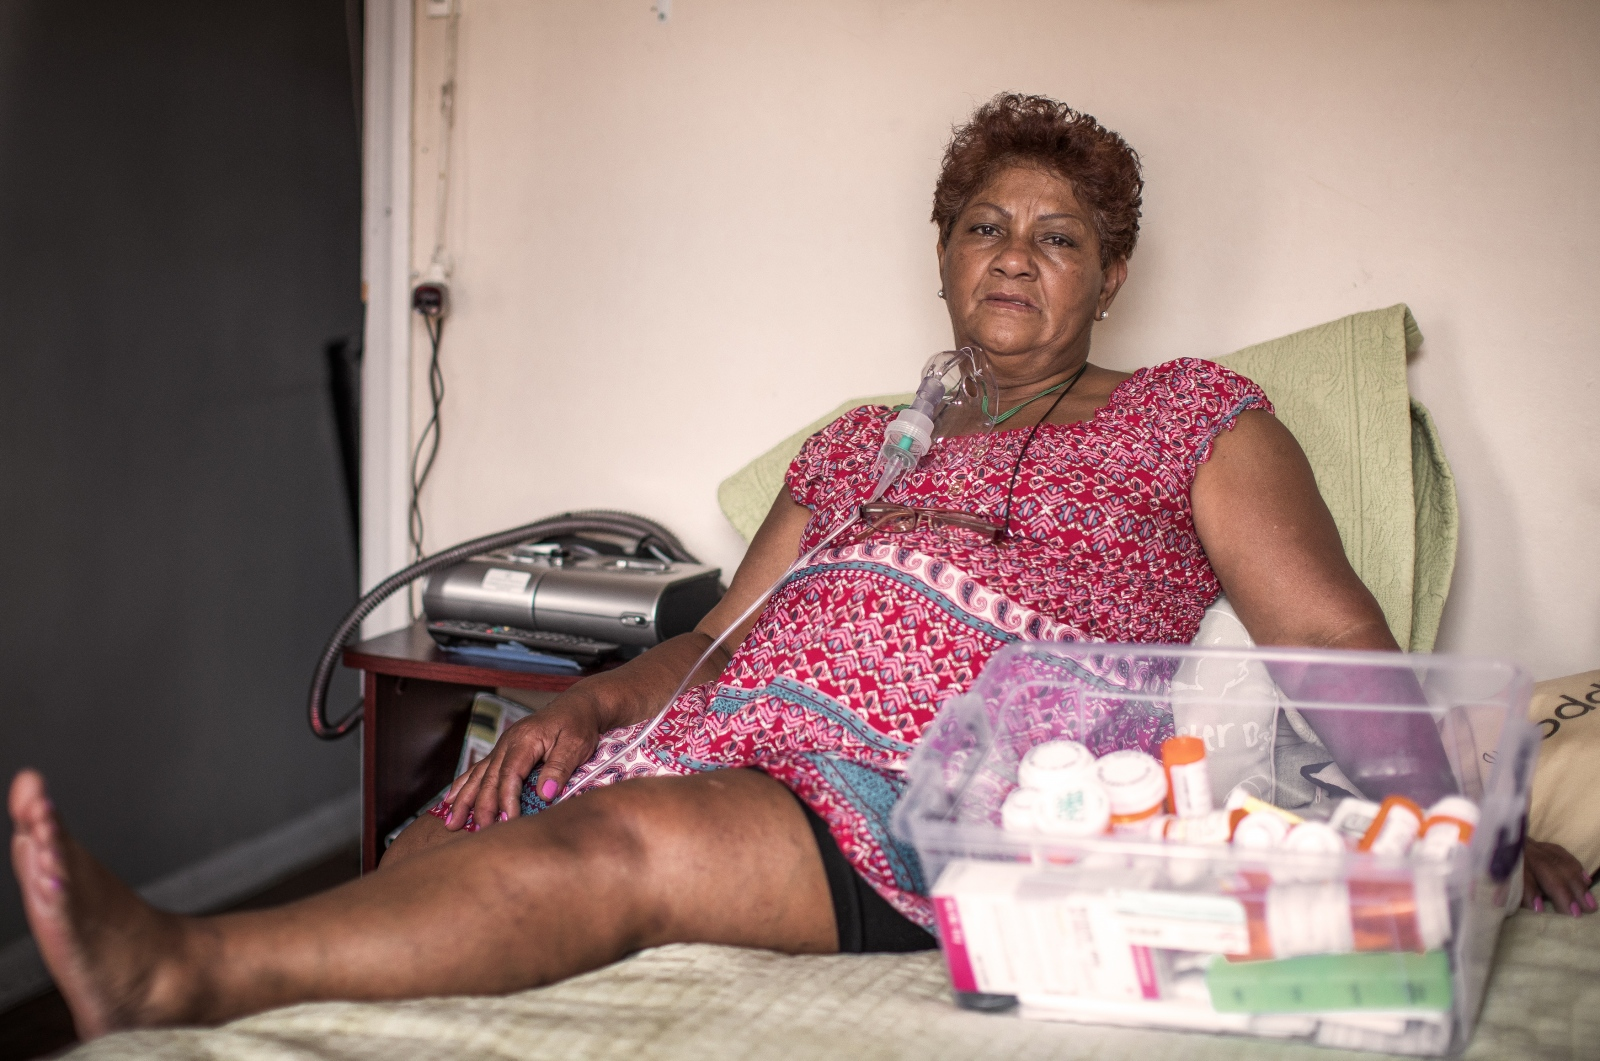 "Nora Treviño, 62, Colombian. She cleaned in the area around the WTC site from Sept. 17, 2001 until March 2002. In 2005, she was diagnosed with asthma, reflux and other diseases. She takes 20 pills a day and is completely disabled. ""My life totally changed ... I forget everything, I get dizzy and I fall."""